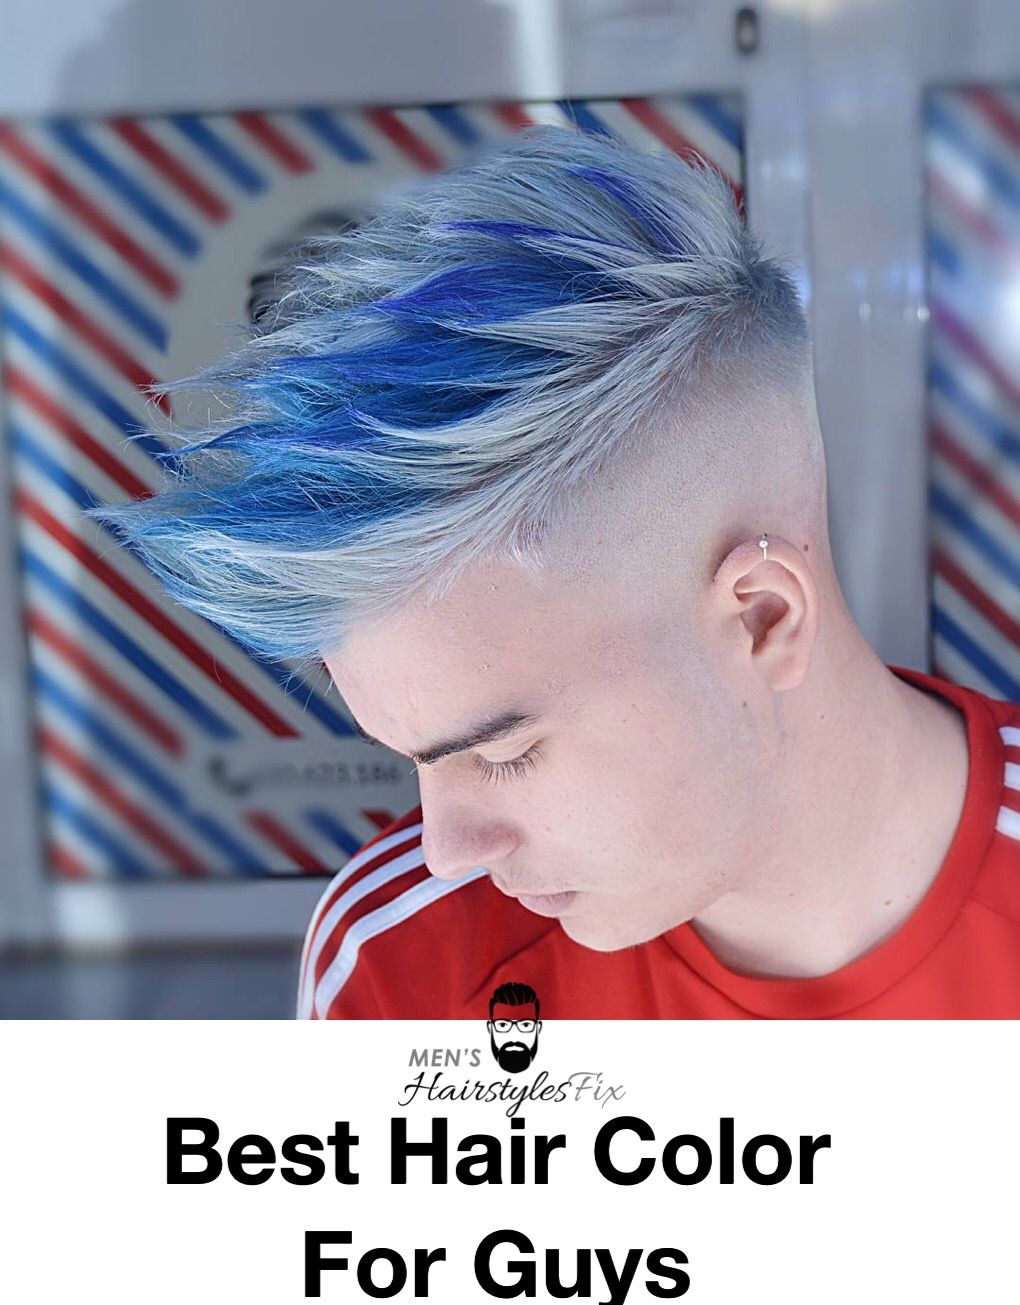 20 Best Hair Color For Guys In 2018 Men S Hairstyles Boys Colored Hair Cool Hair Color Men Hair Color